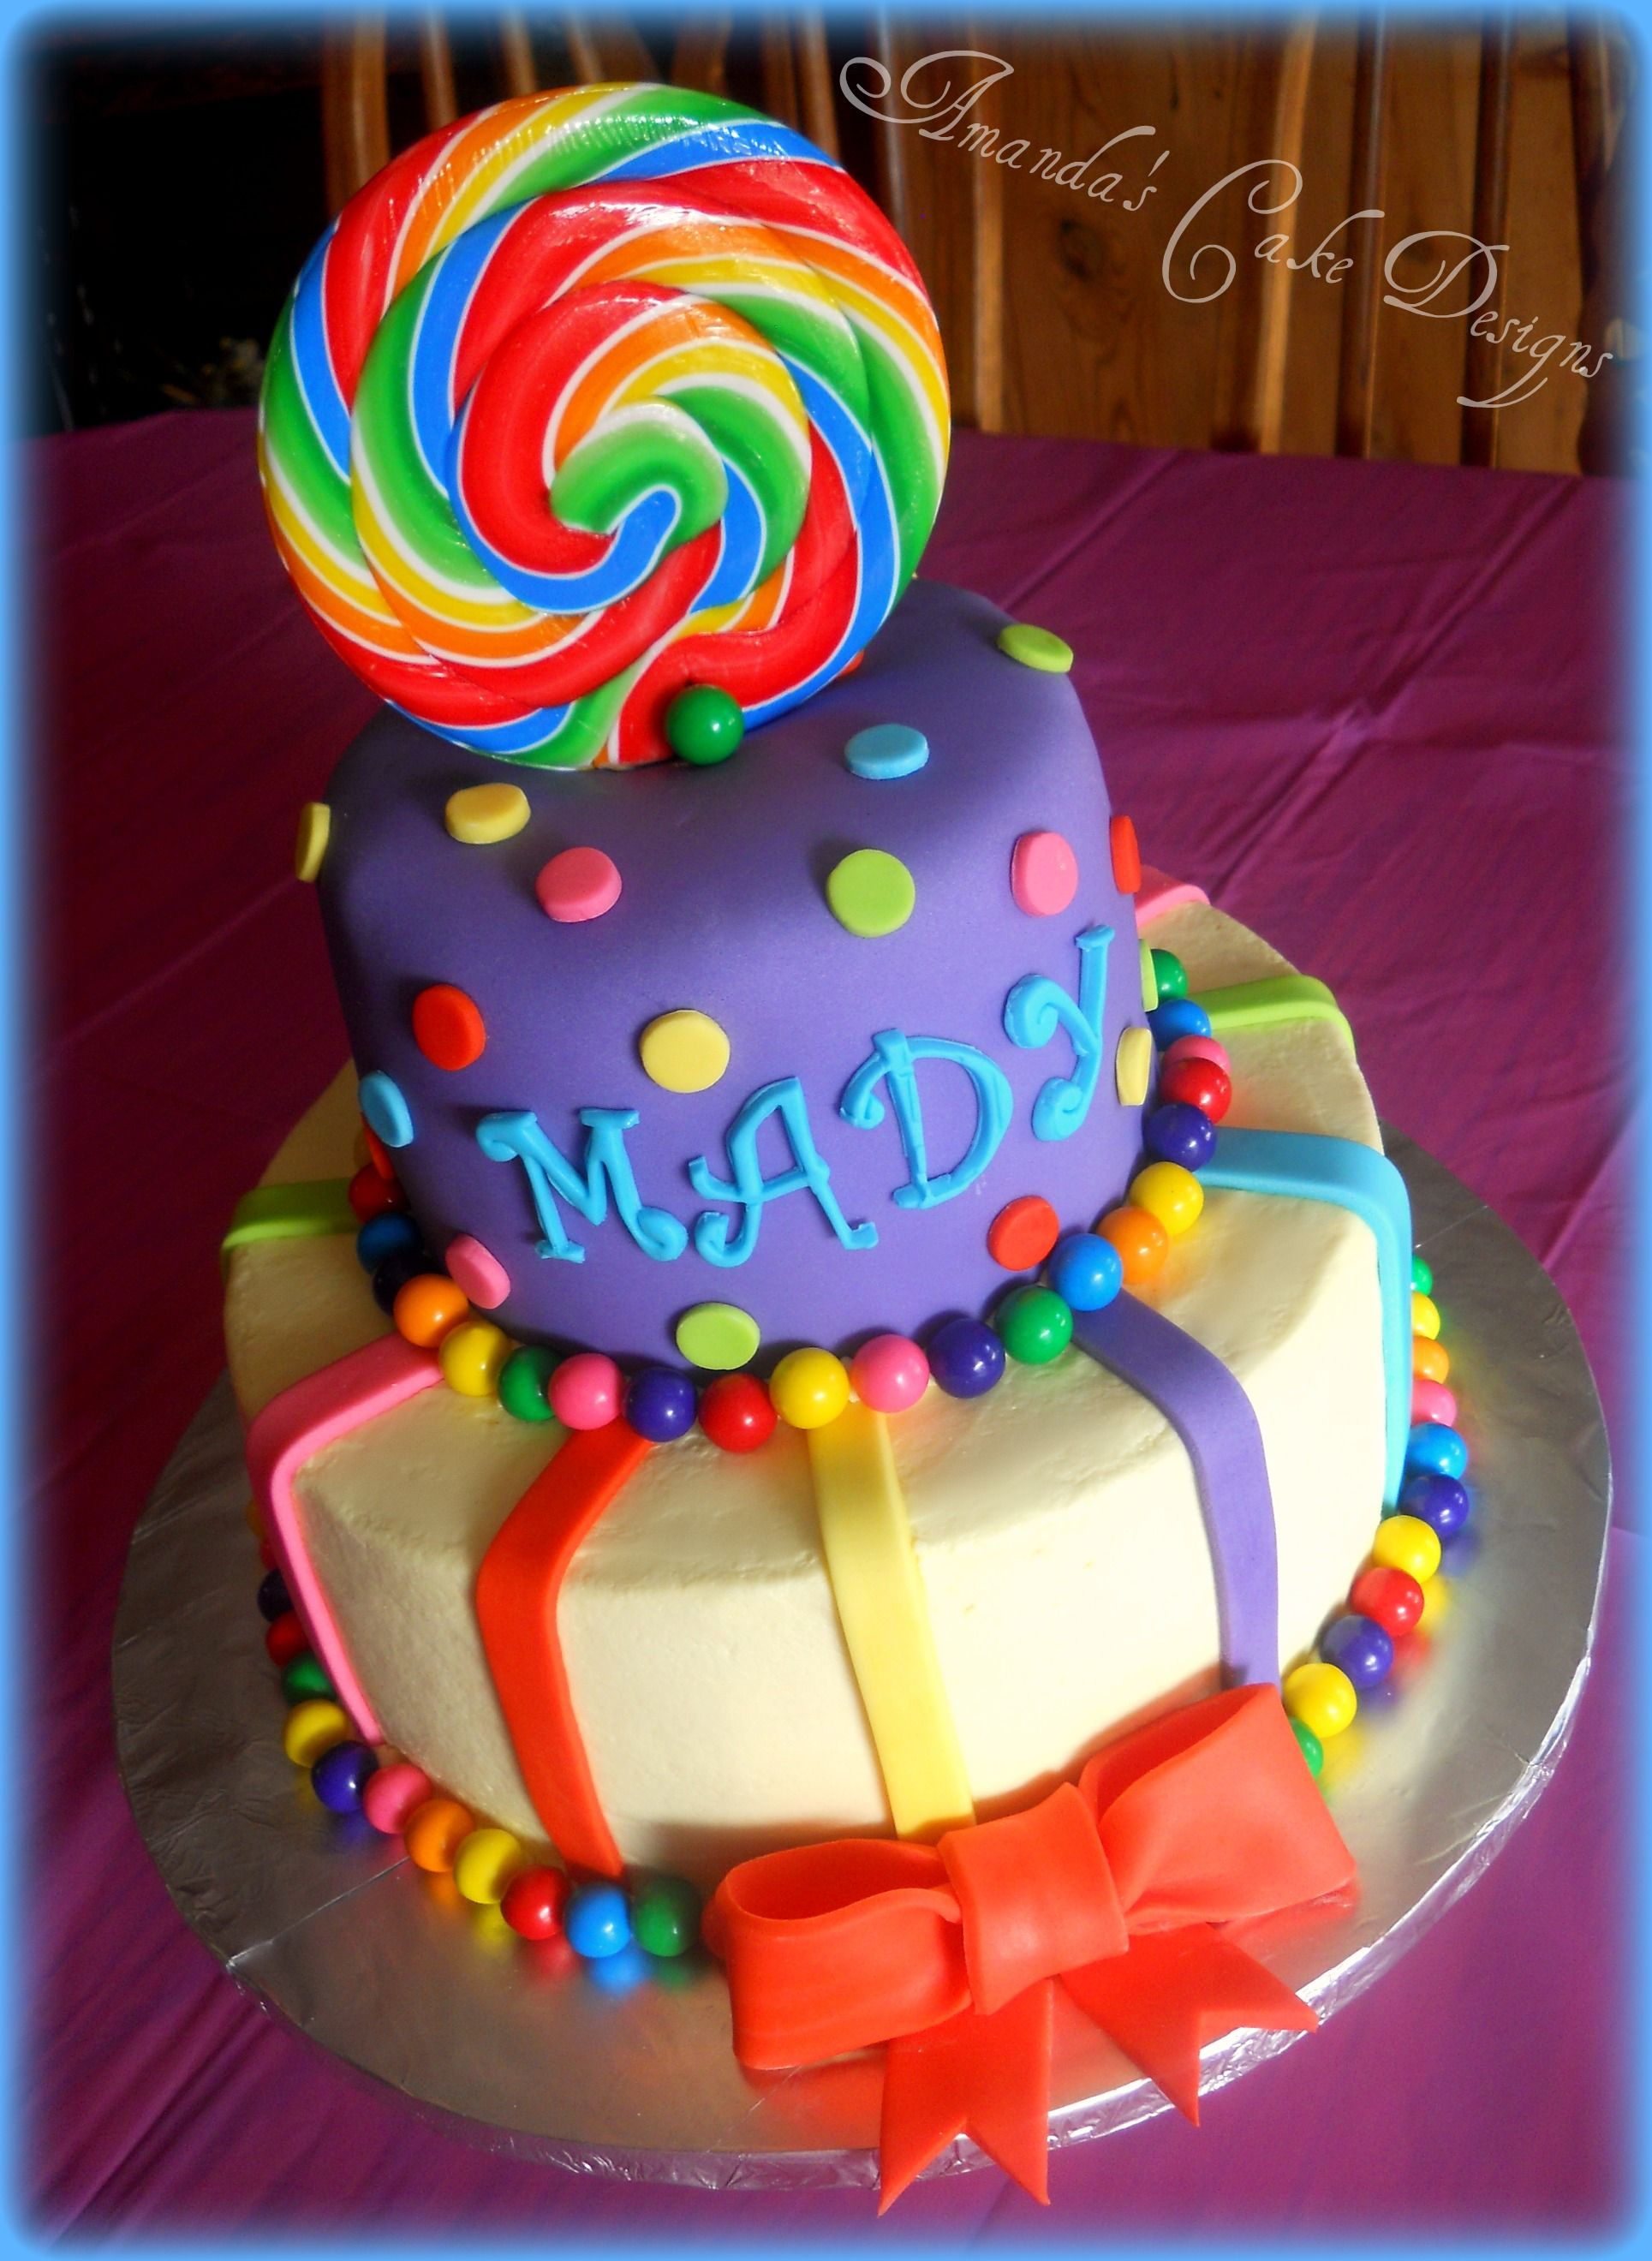 Candyland Birthday Cake Cute This Would Be Cute For A Candyland Party Made My Fav Baker